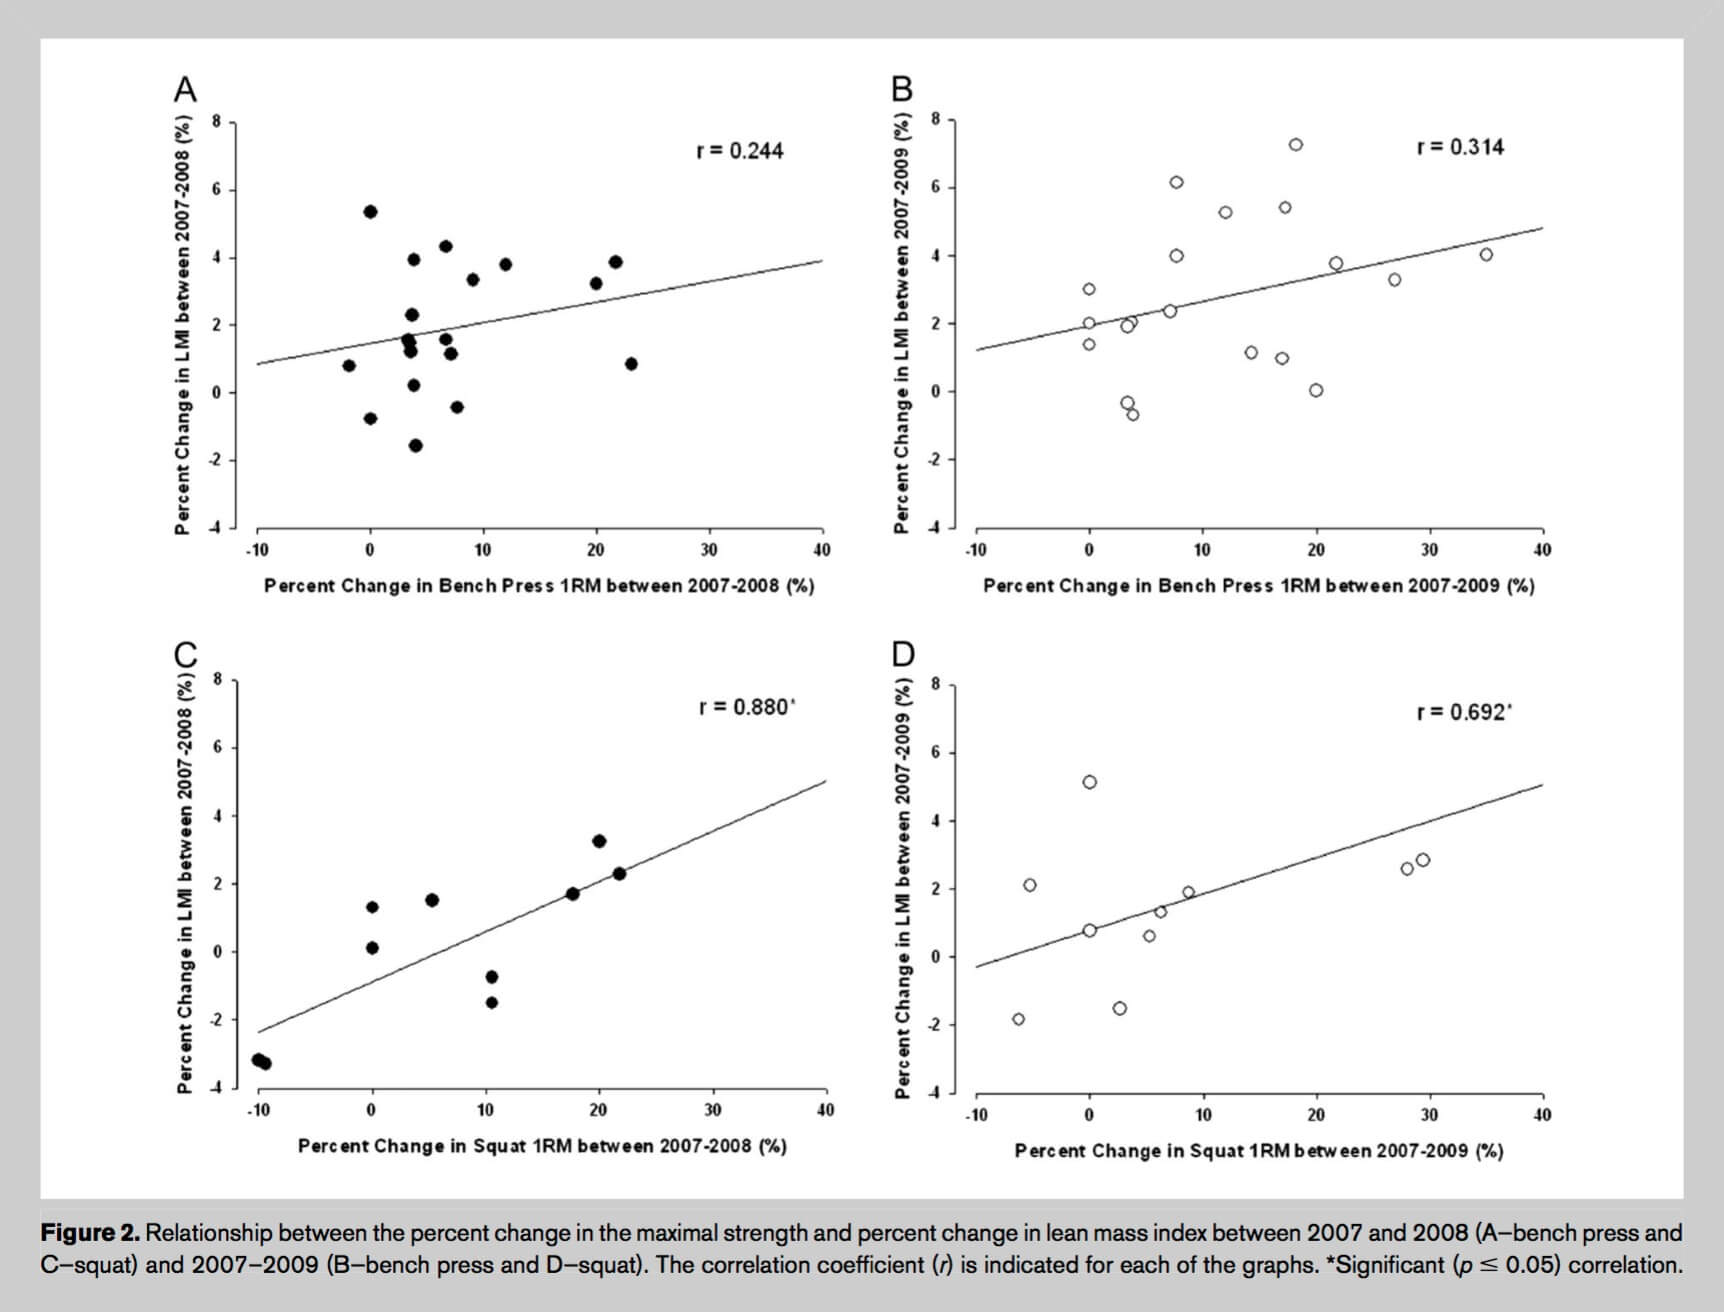 As you can see, the relationship is much stronger for the squat than for the bench press. Source.